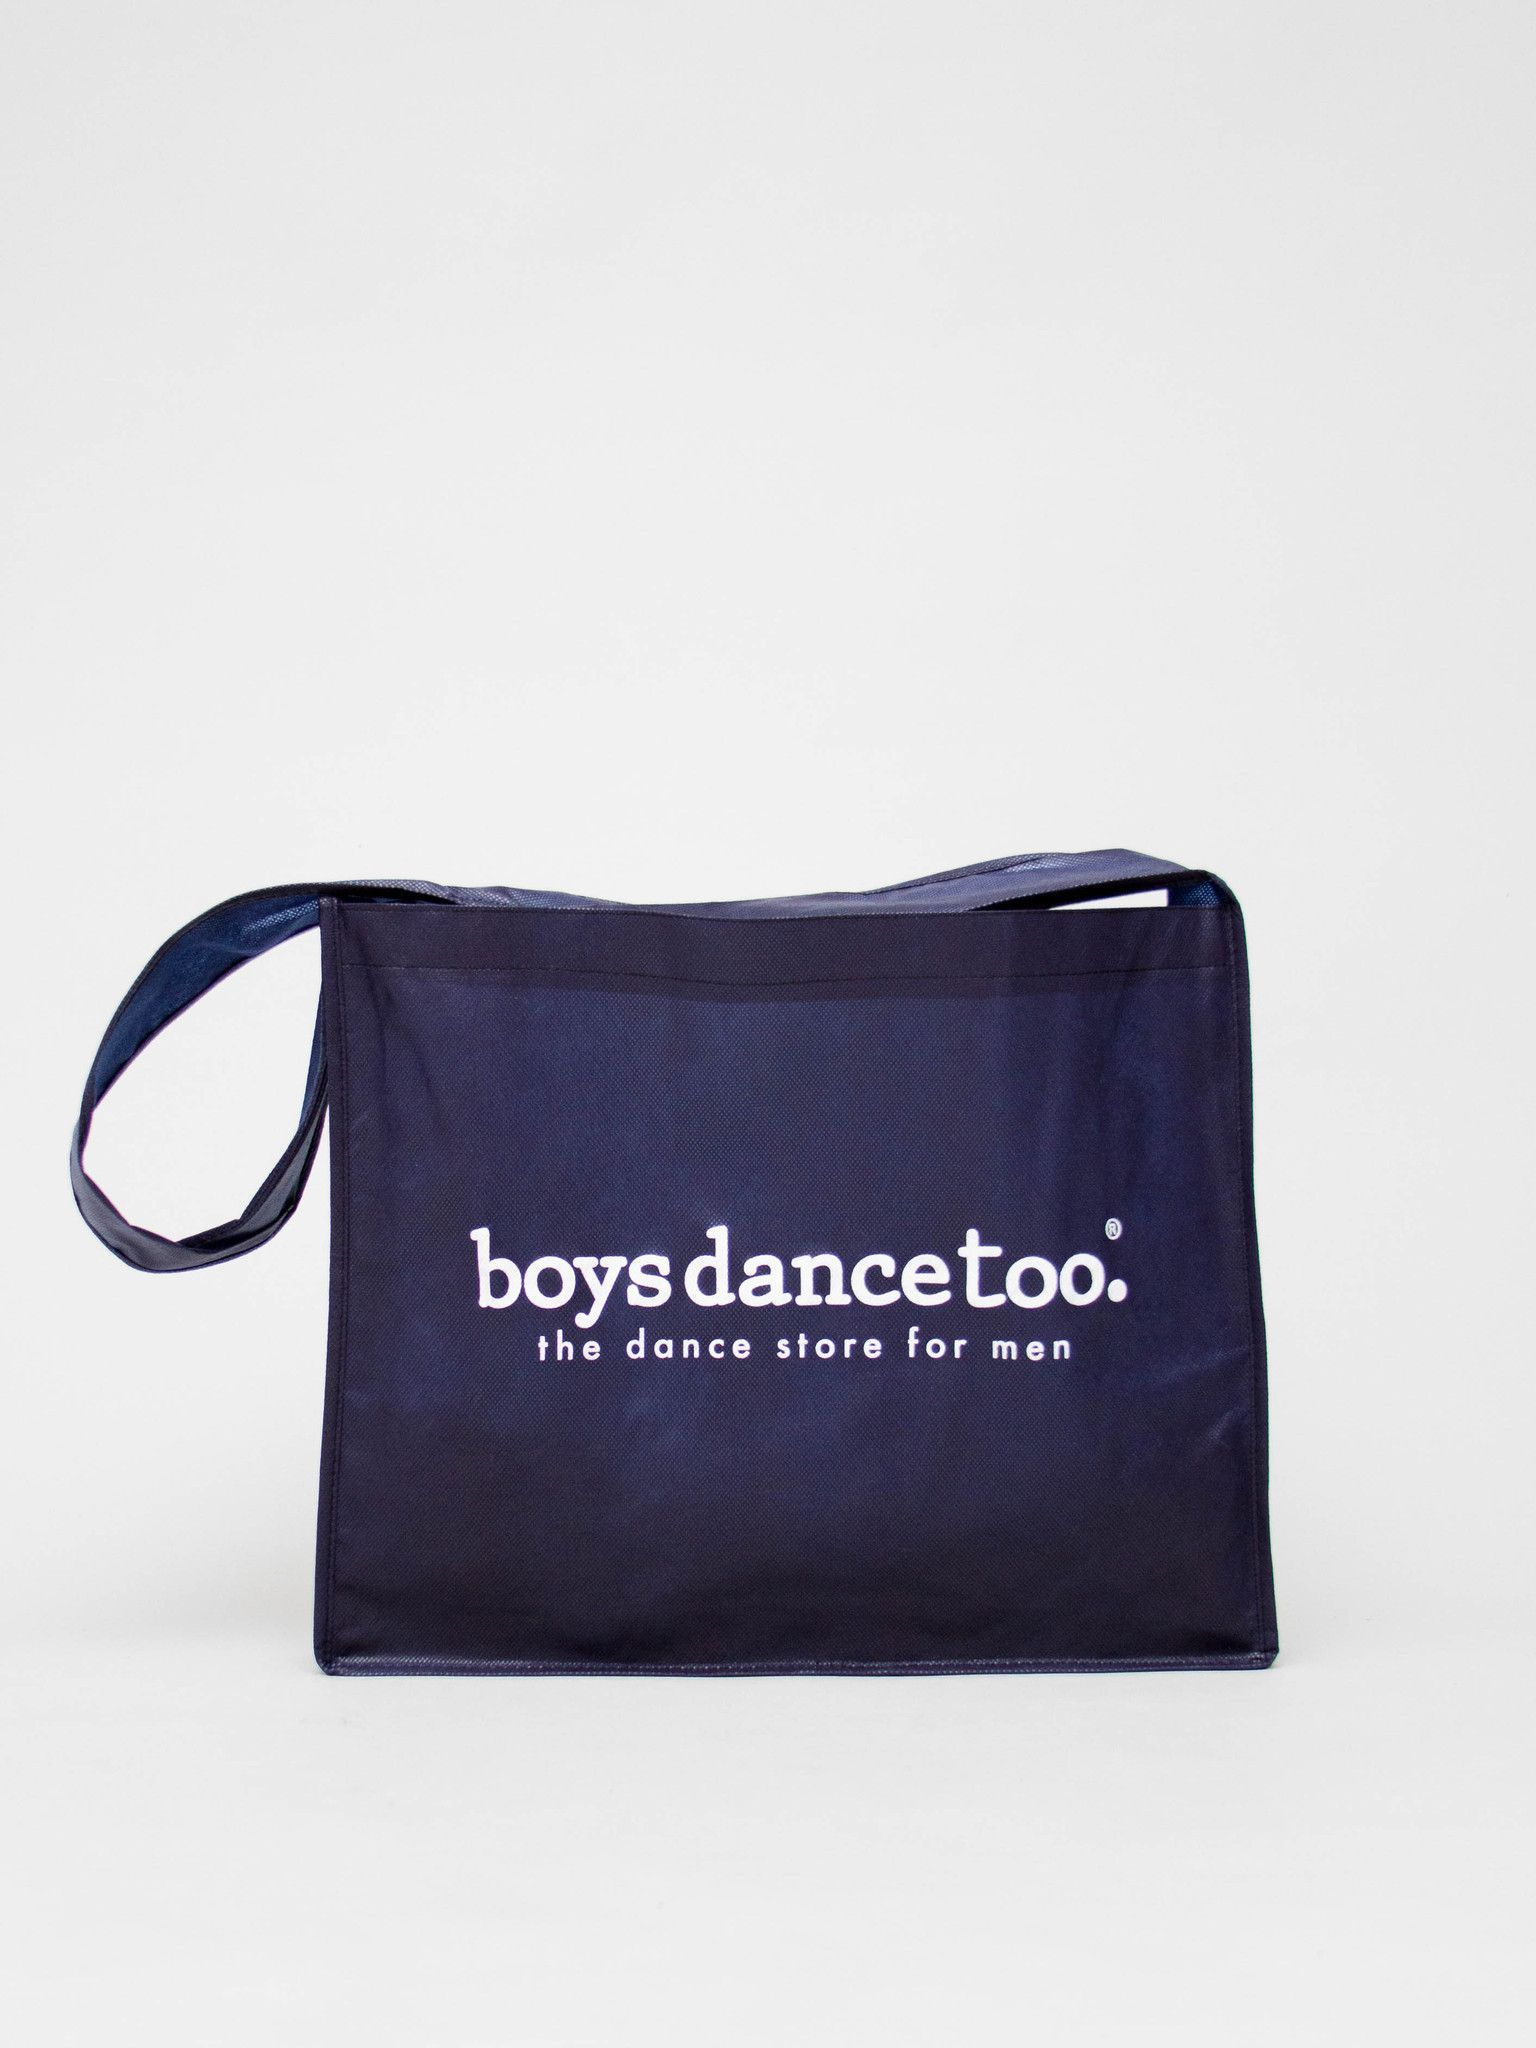 Reusable Shopping Bag | Men's and Boys' Dancewear - boysdancetoo ...